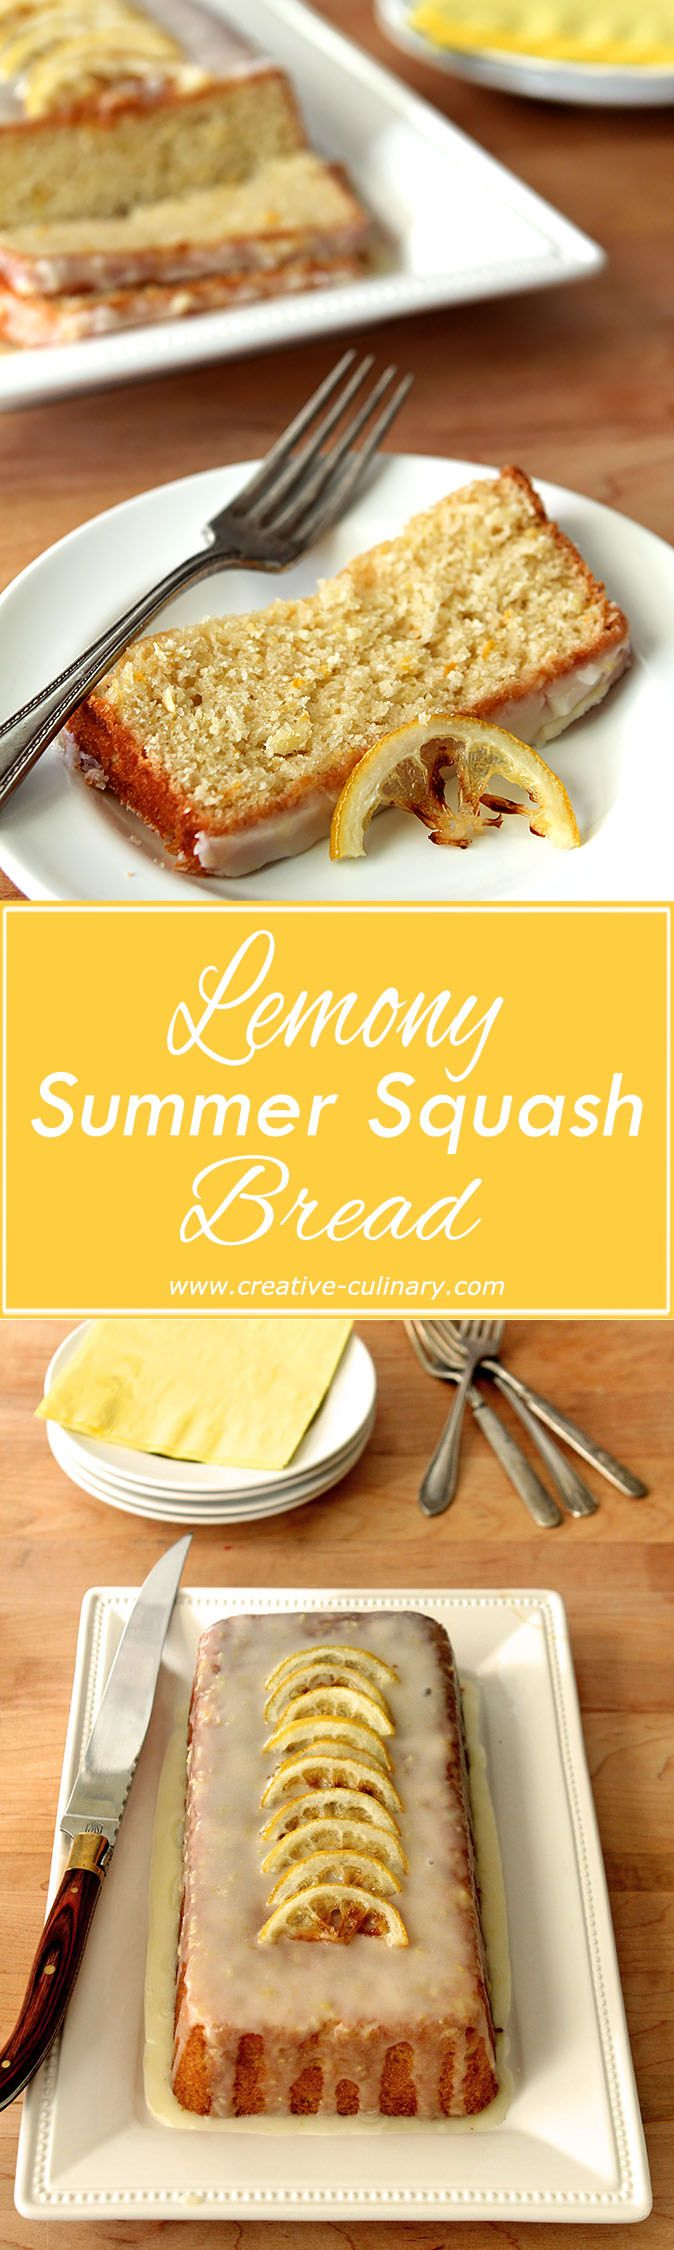 Forget zucchini; try making bread with yellow summer squash. This Lemon Summer Squash Bread is AMAZING! via @creativculinary